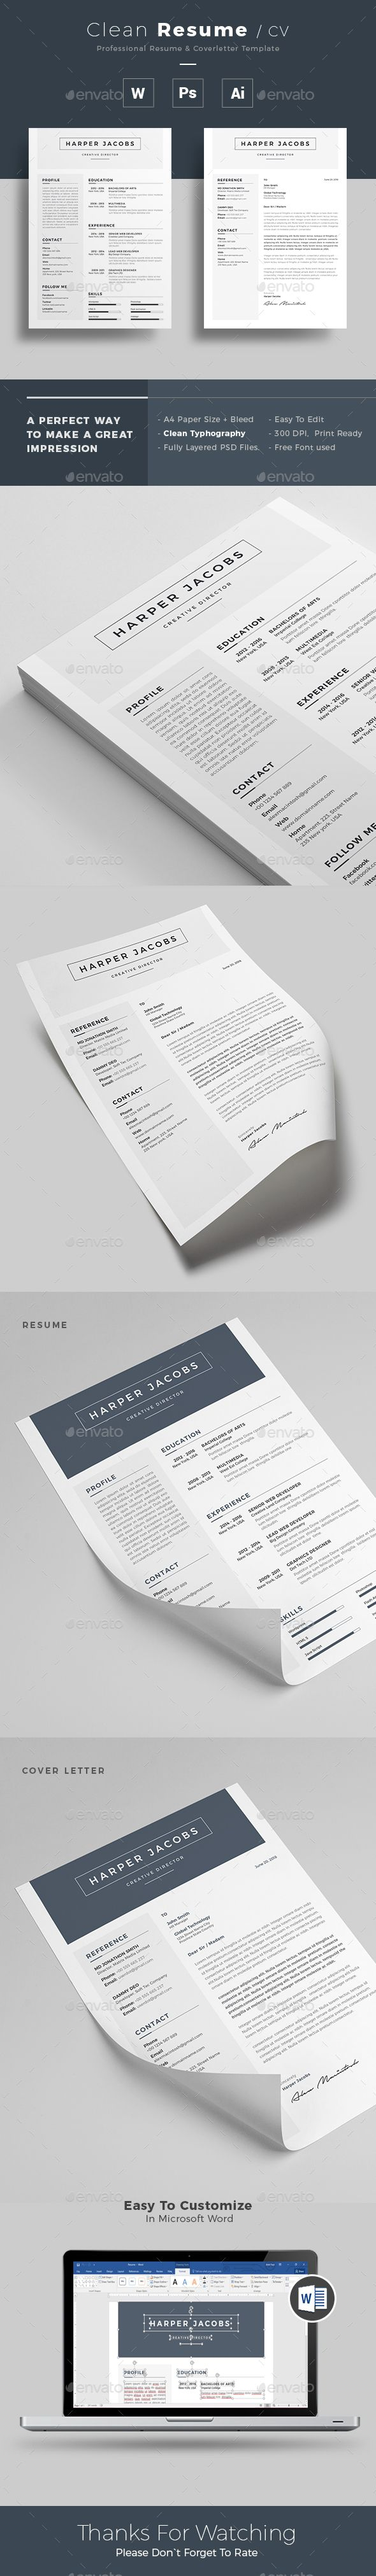 Resume by Graphixo_Design Professional Resume/CV Template with super modern and professional look. Elegant page designs are easy to use and customize, so yo